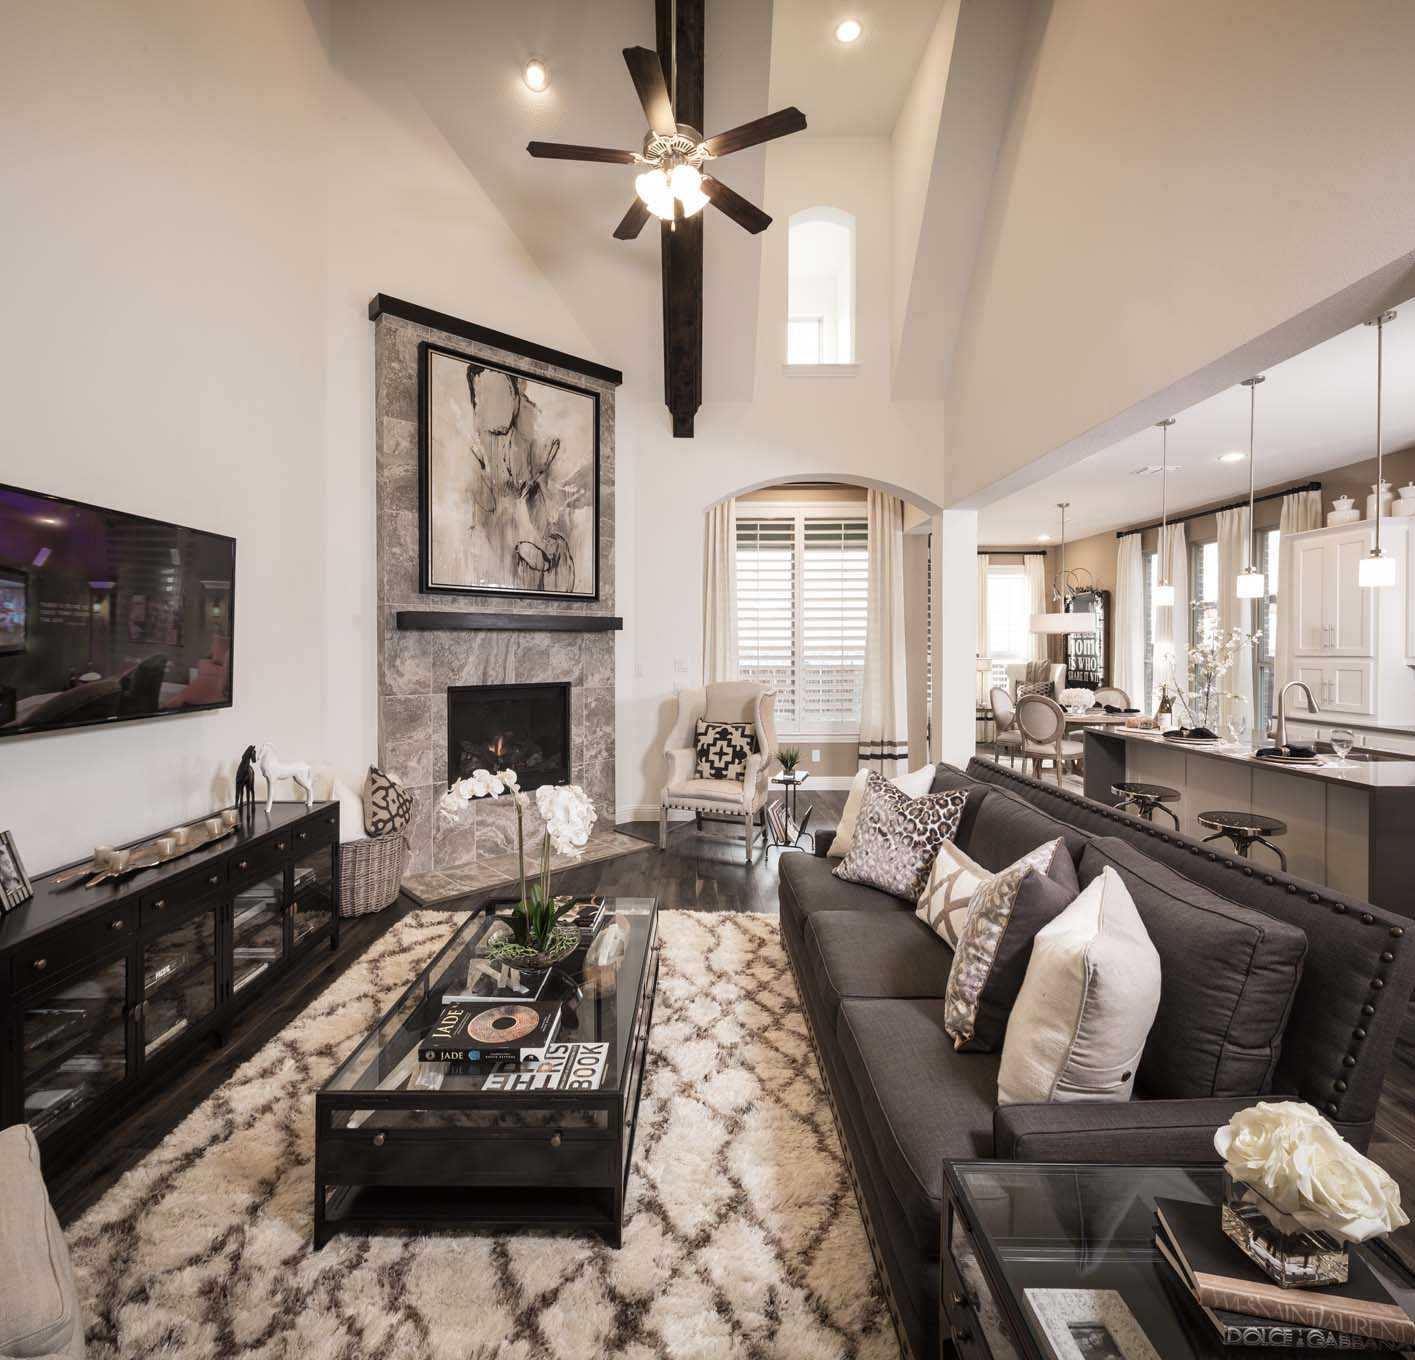 Highland Homes Plan 377 Model Home in Dallas / Fort Worth